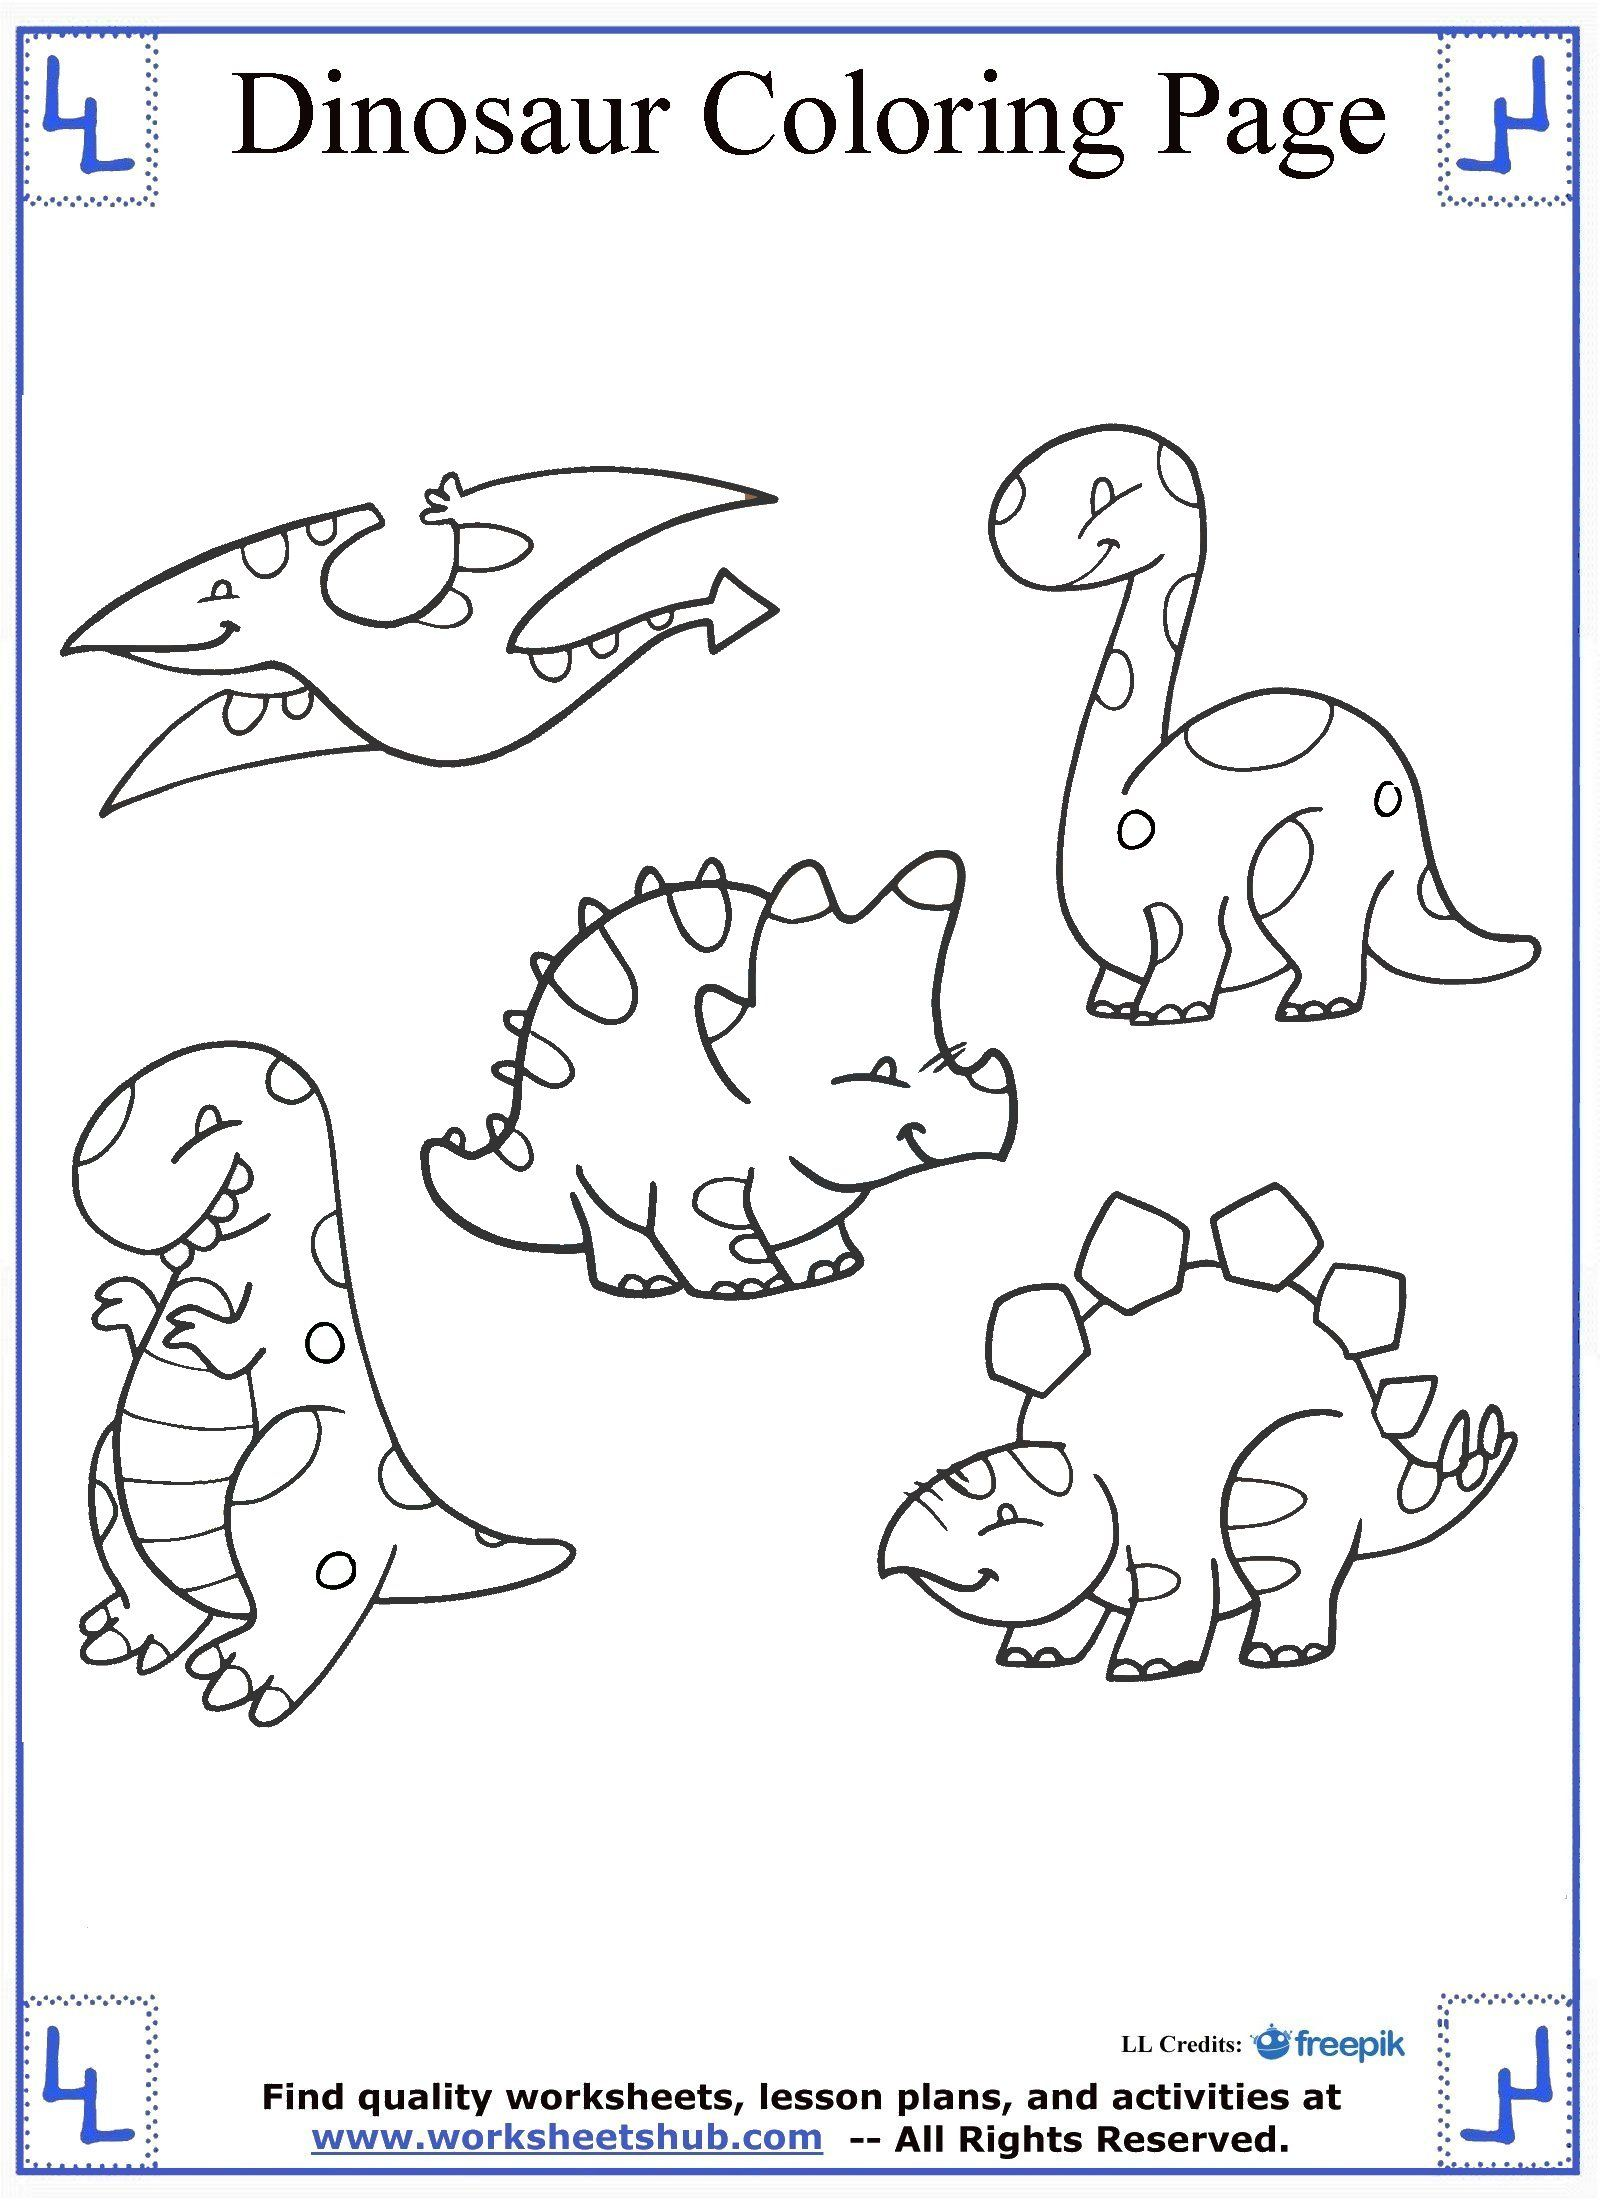 Dinosaur Coloring Pages Dinosaur coloring, Coloring pages